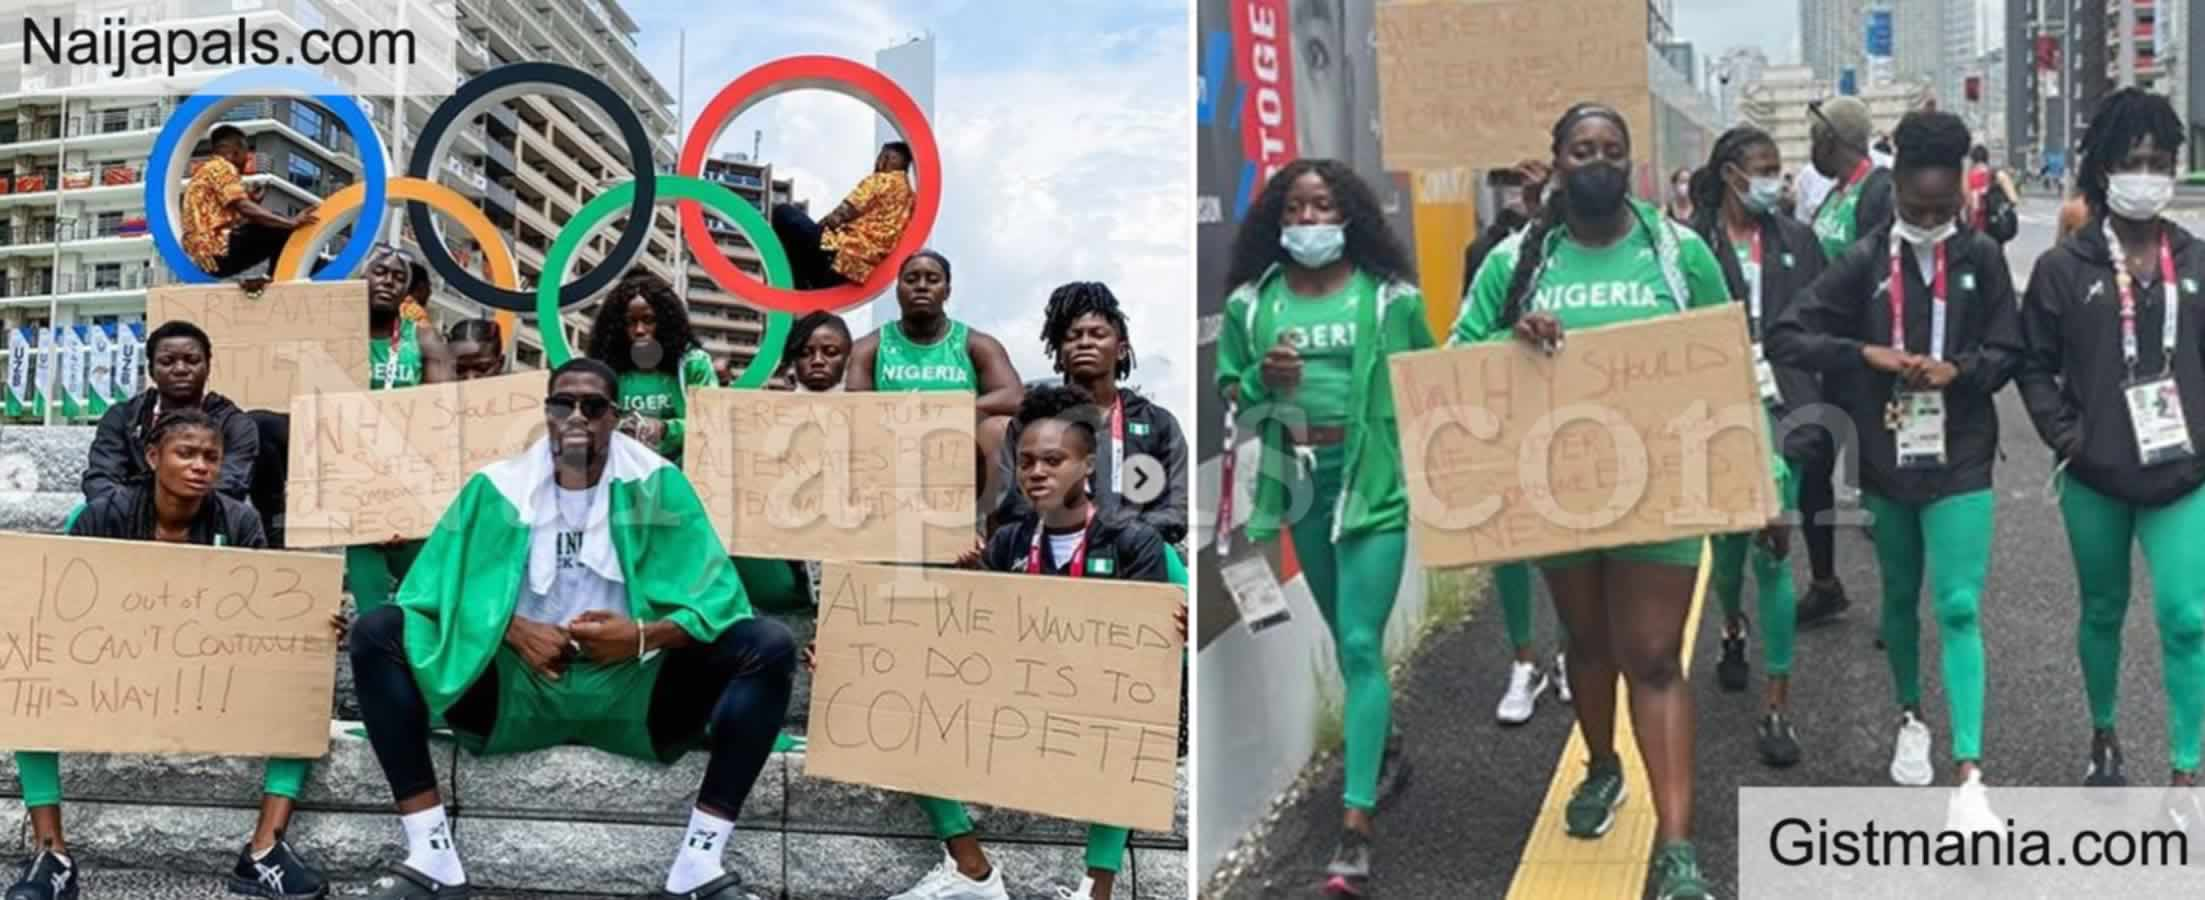 <img alt='.' class='lazyload' data-src='https://img.gistmania.com/emot/news.gif' /> Tokyo Olympics: <b>Disqualified Nigerian Athletes Storm The Streets Of Japan To Protest</b> (PHOTOS)